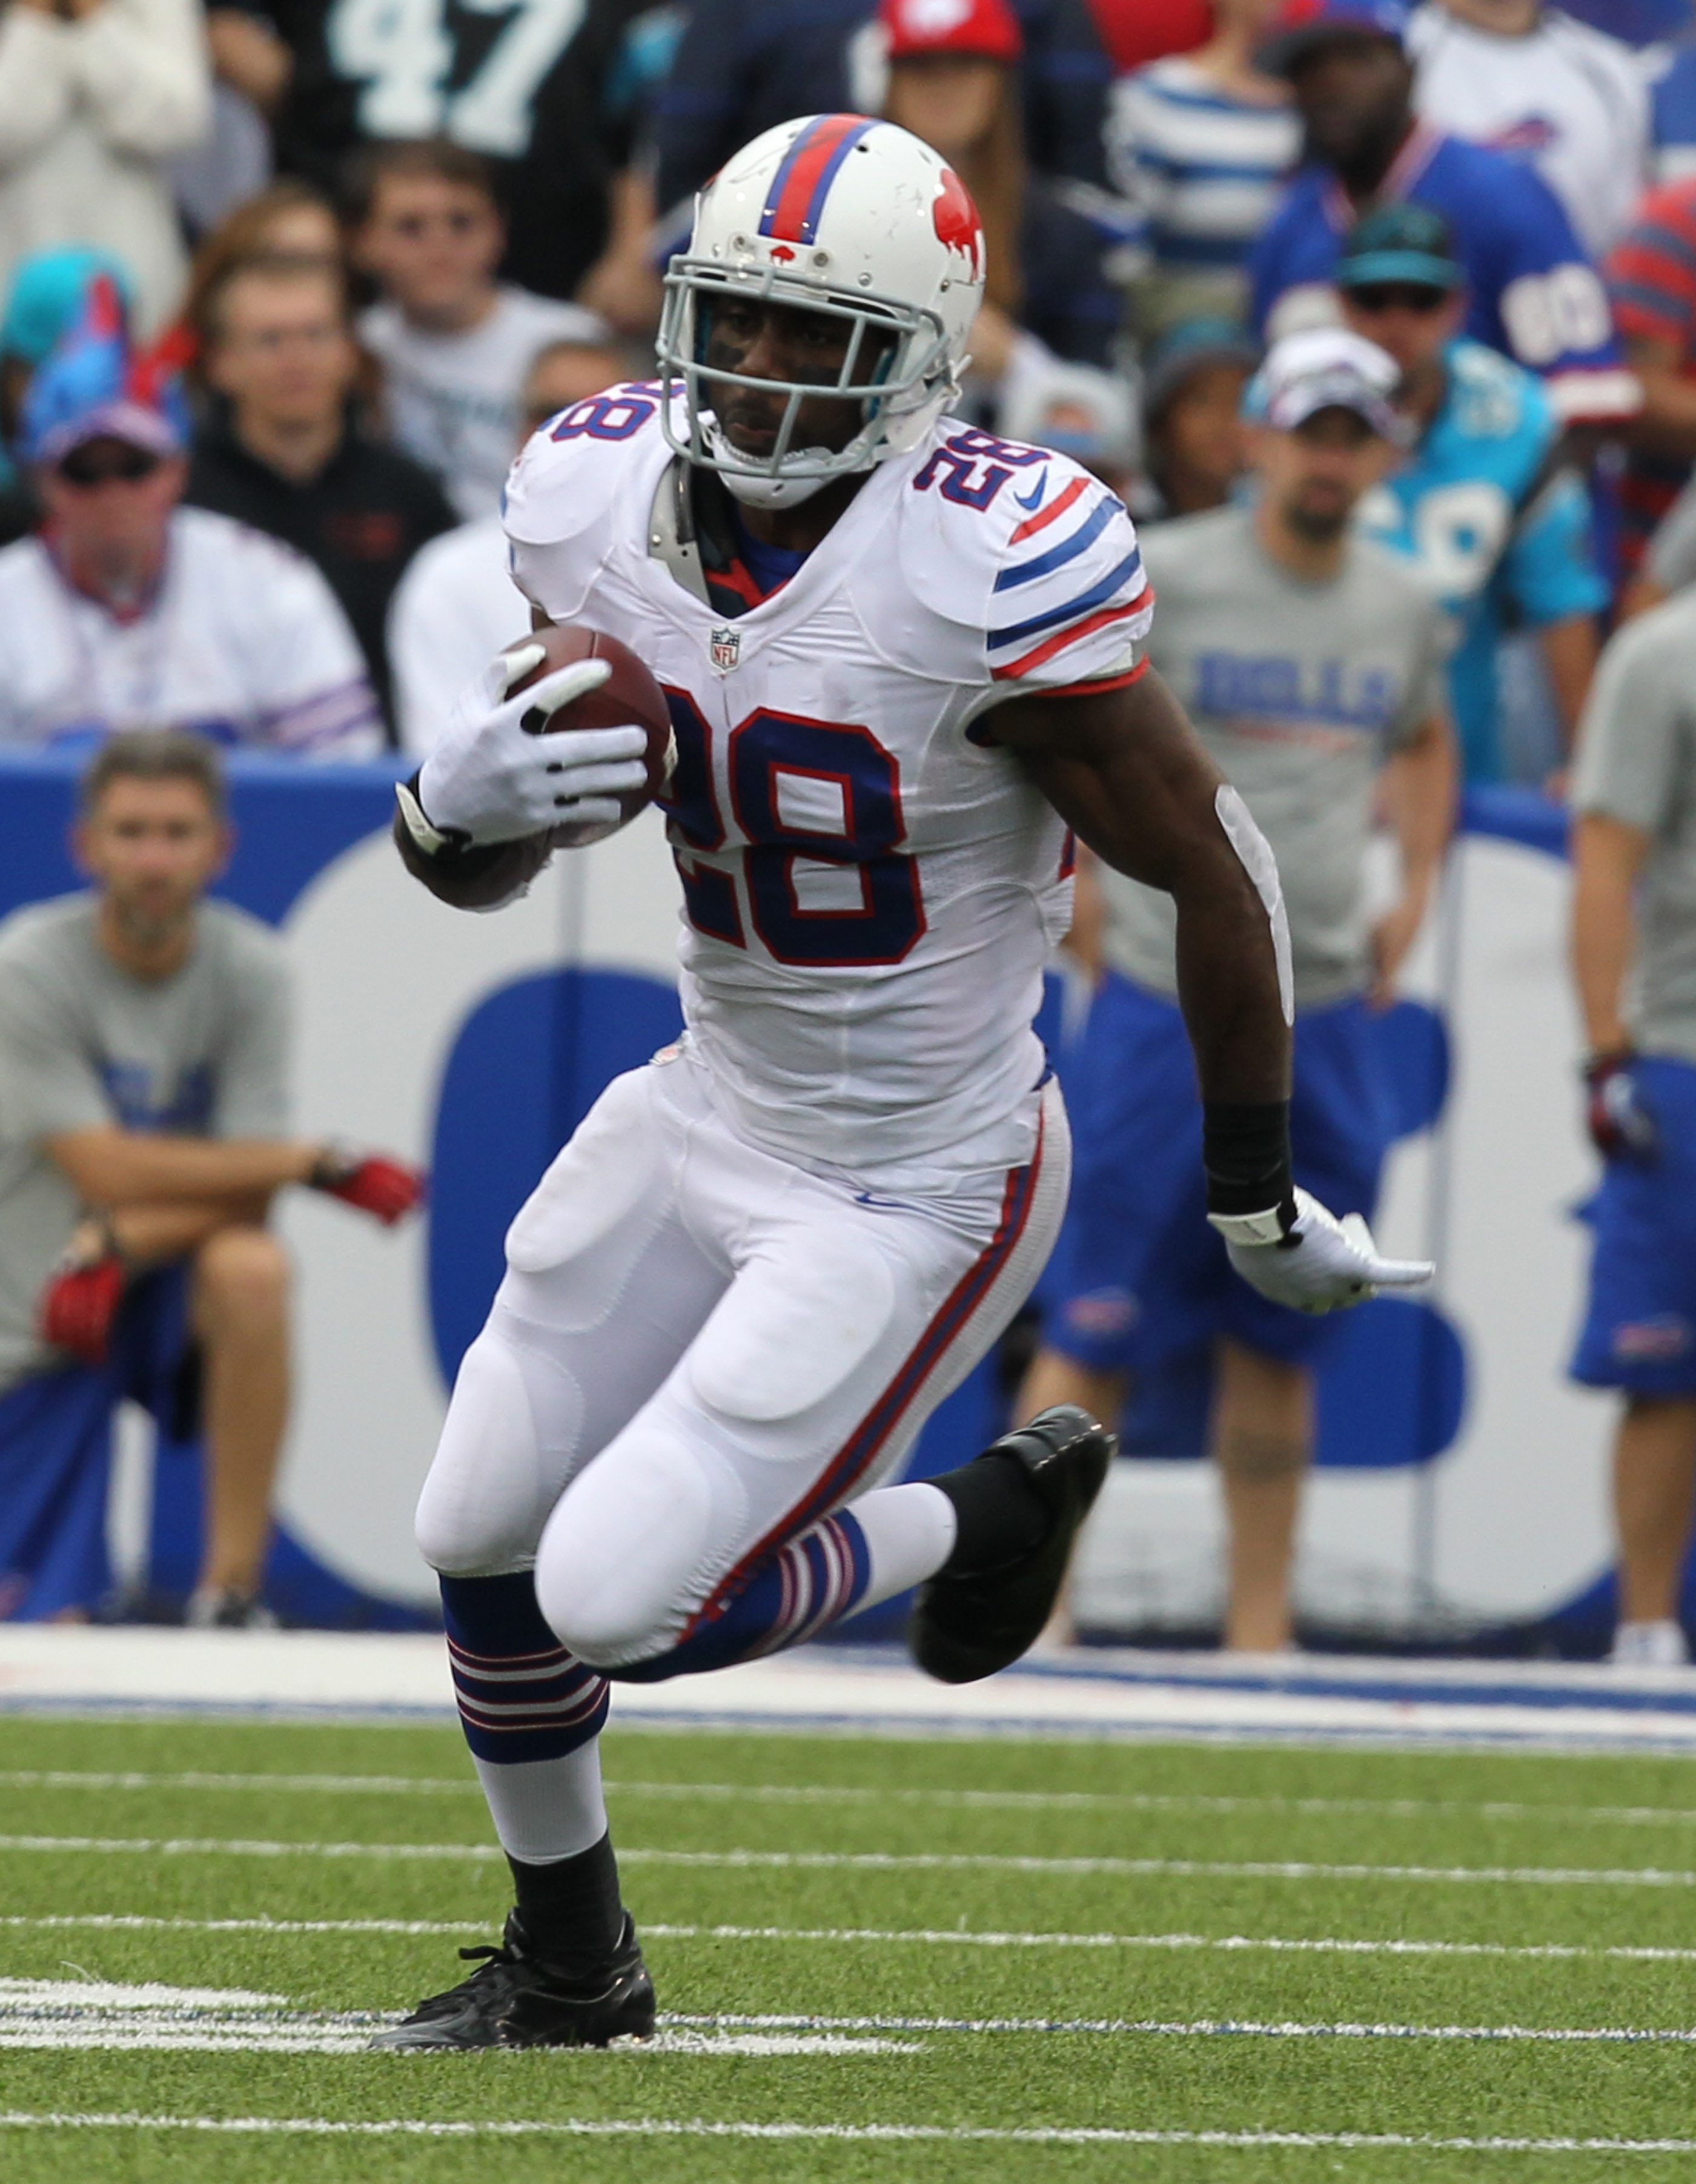 Fans who aren't going to the game Sunday might just get the chance to see Buffalo Bills running back C.J. Spiller and the rest of the team play the Cincinnati Bengals on Sunday.